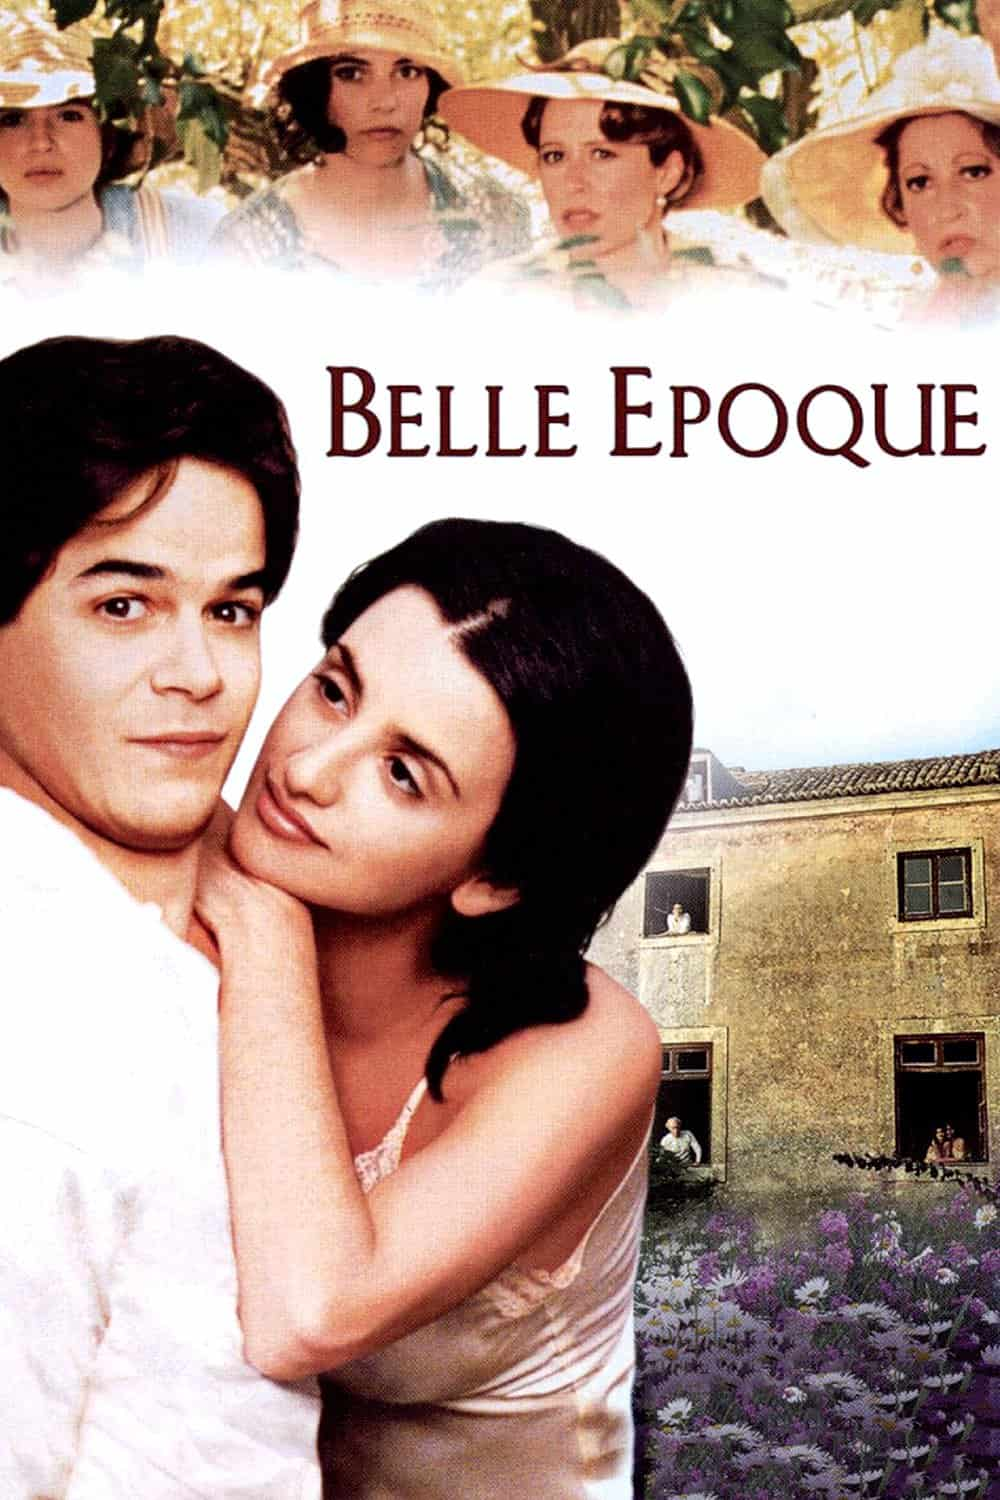 Belle Epoque, 1992